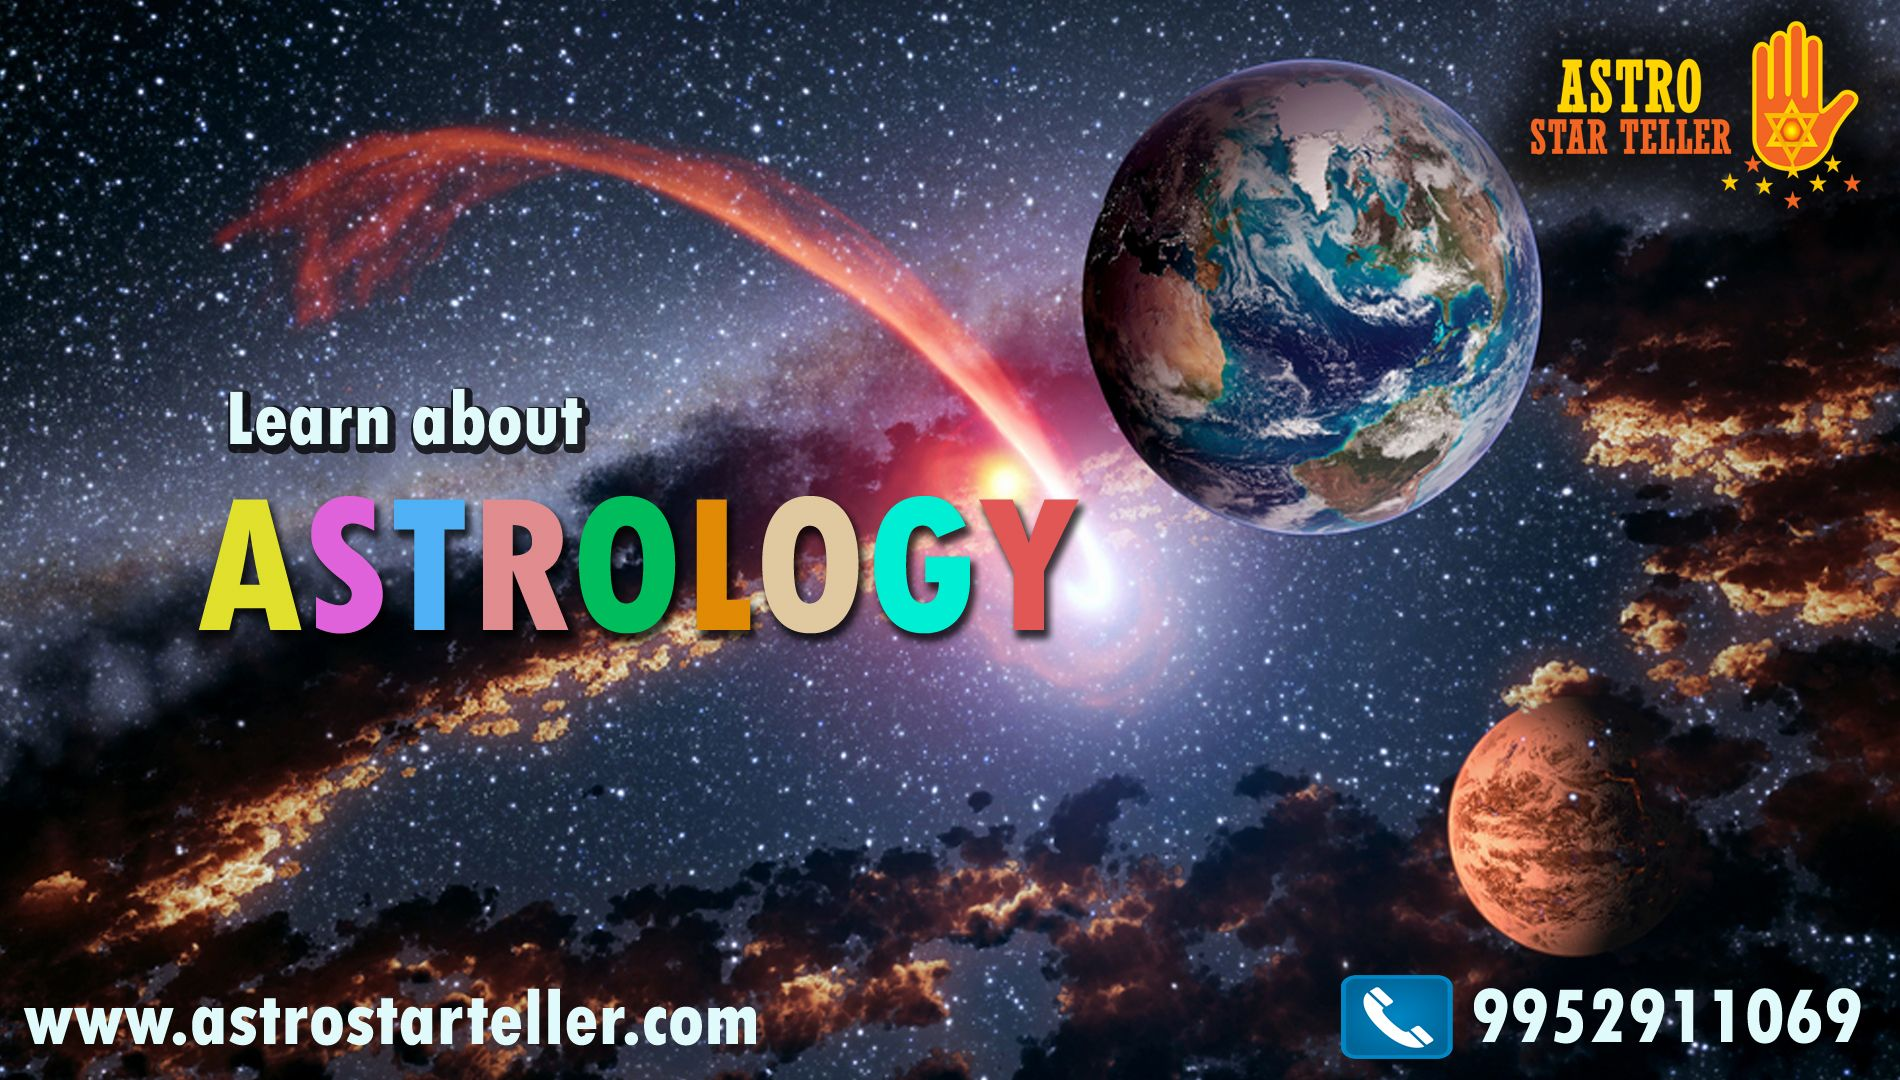 Best astrologer in india love problems marriage